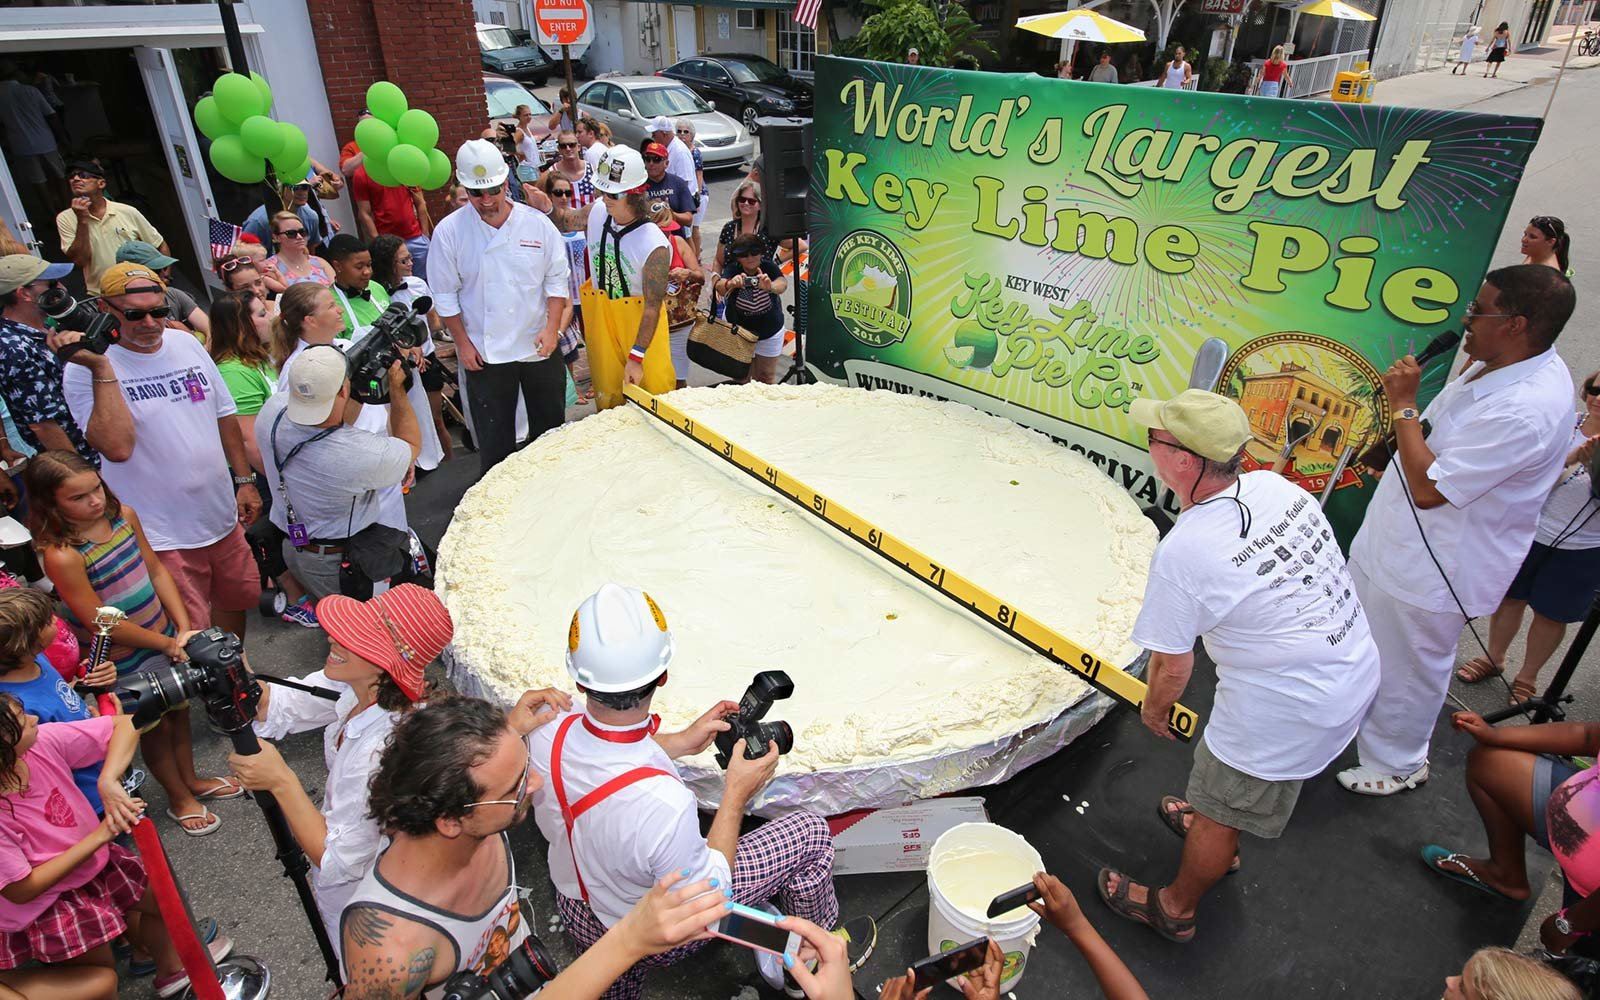 Key Lime Festival, Key West, Florida